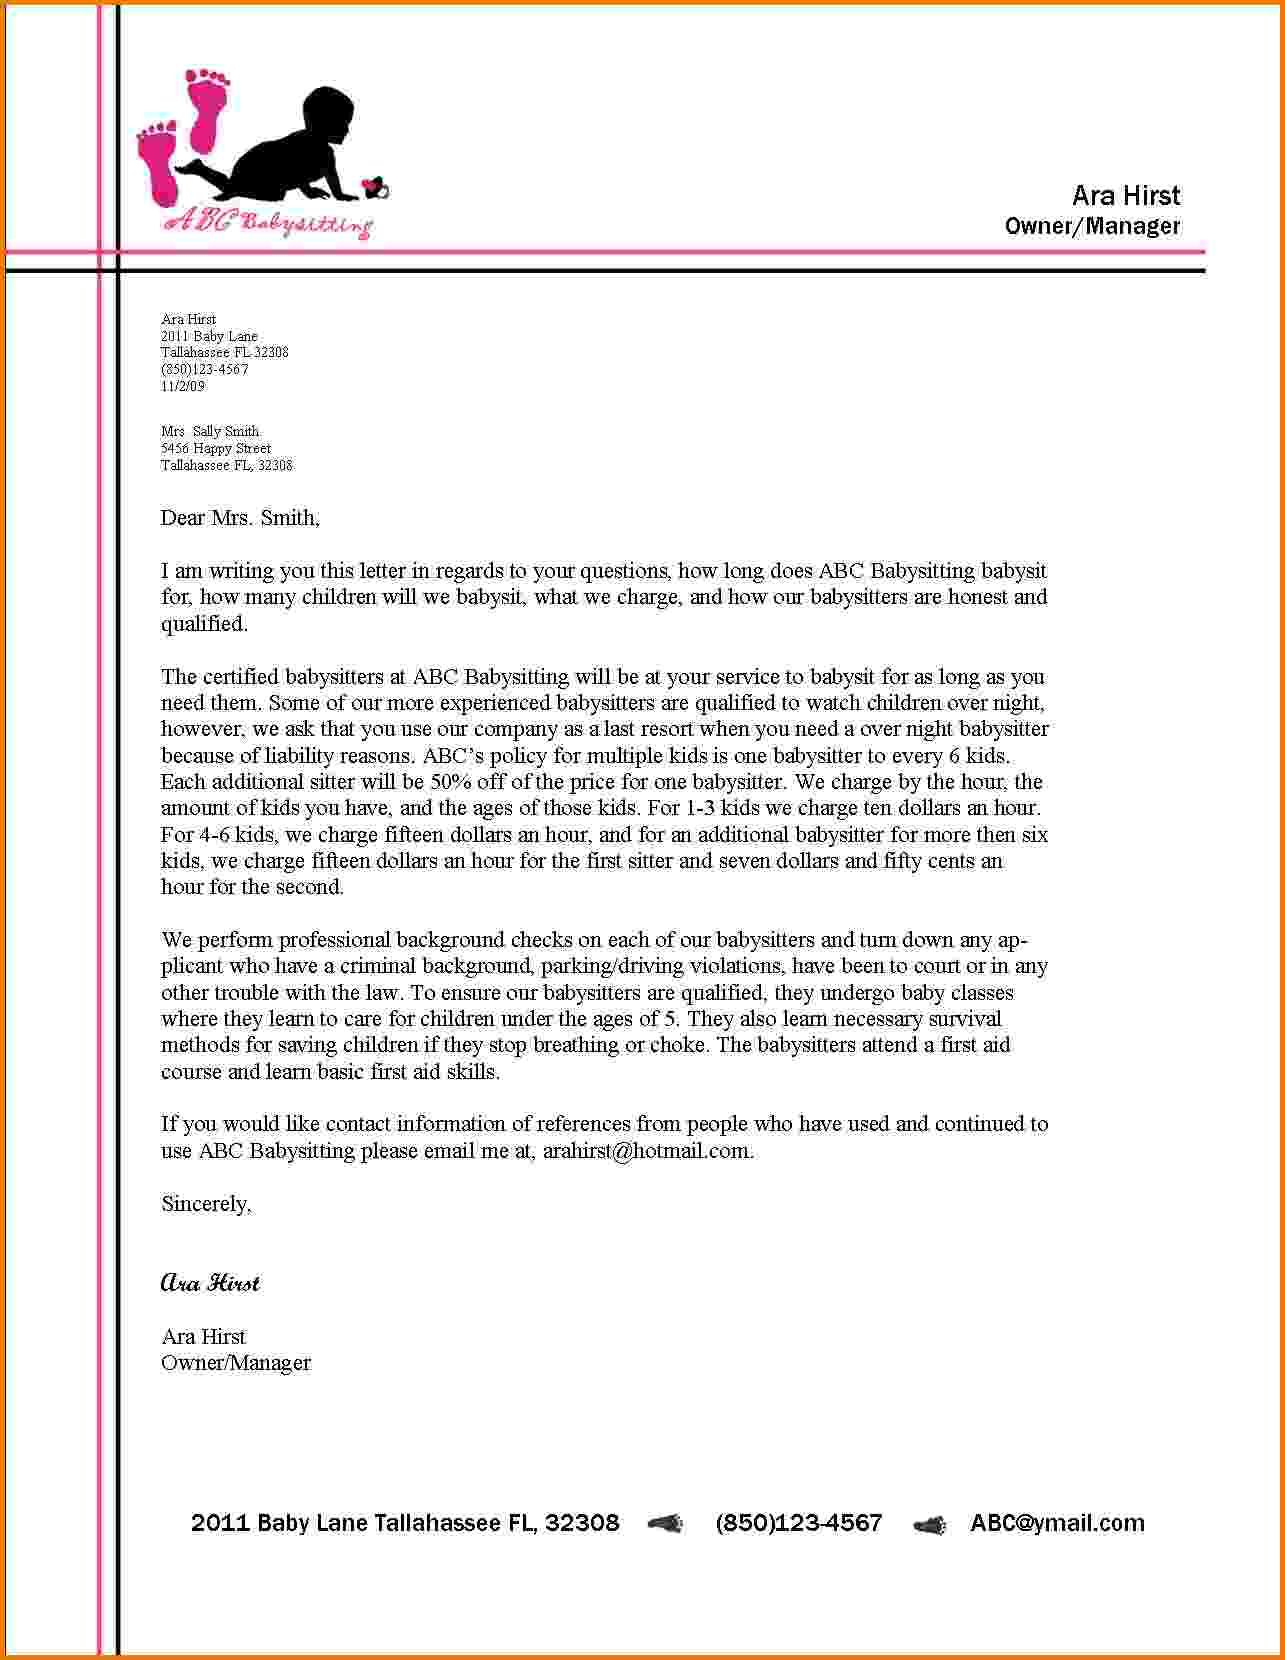 Business letter from company sample format with multiple signatures business letter from company sample format with multiple signatures spiritdancerdesigns Images